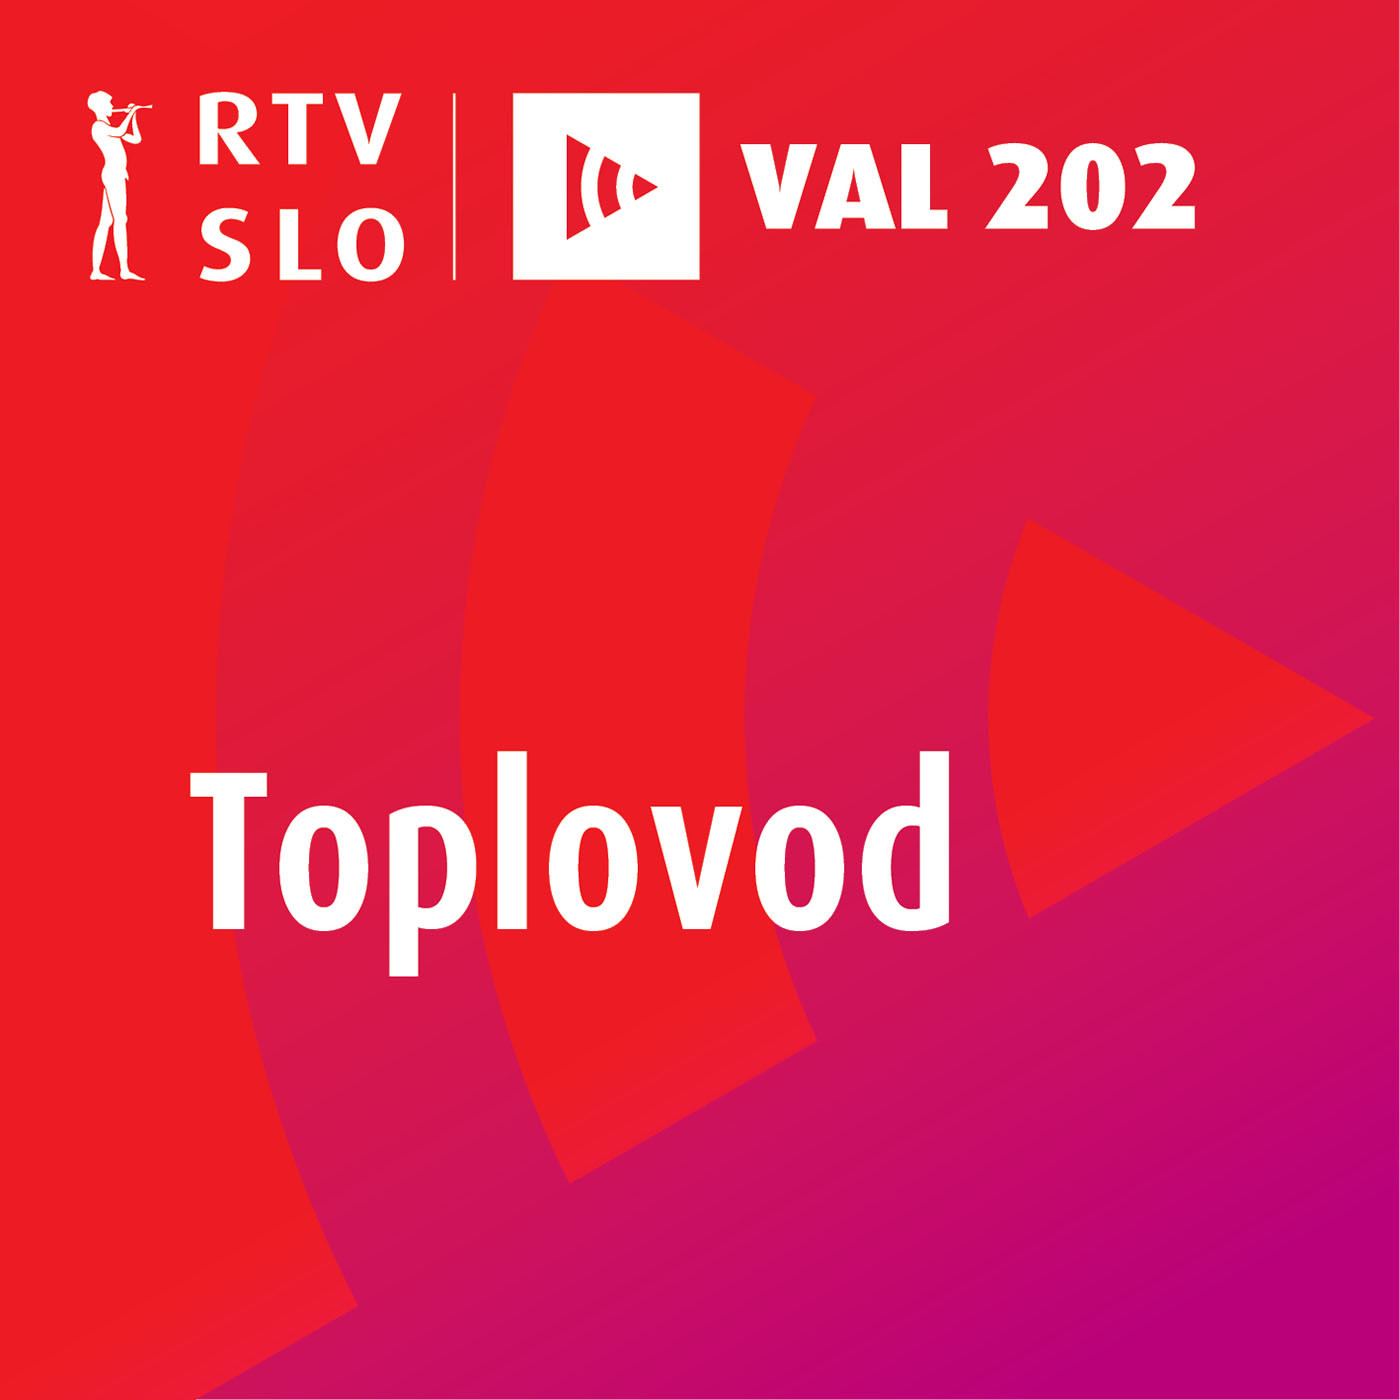 Toplovod